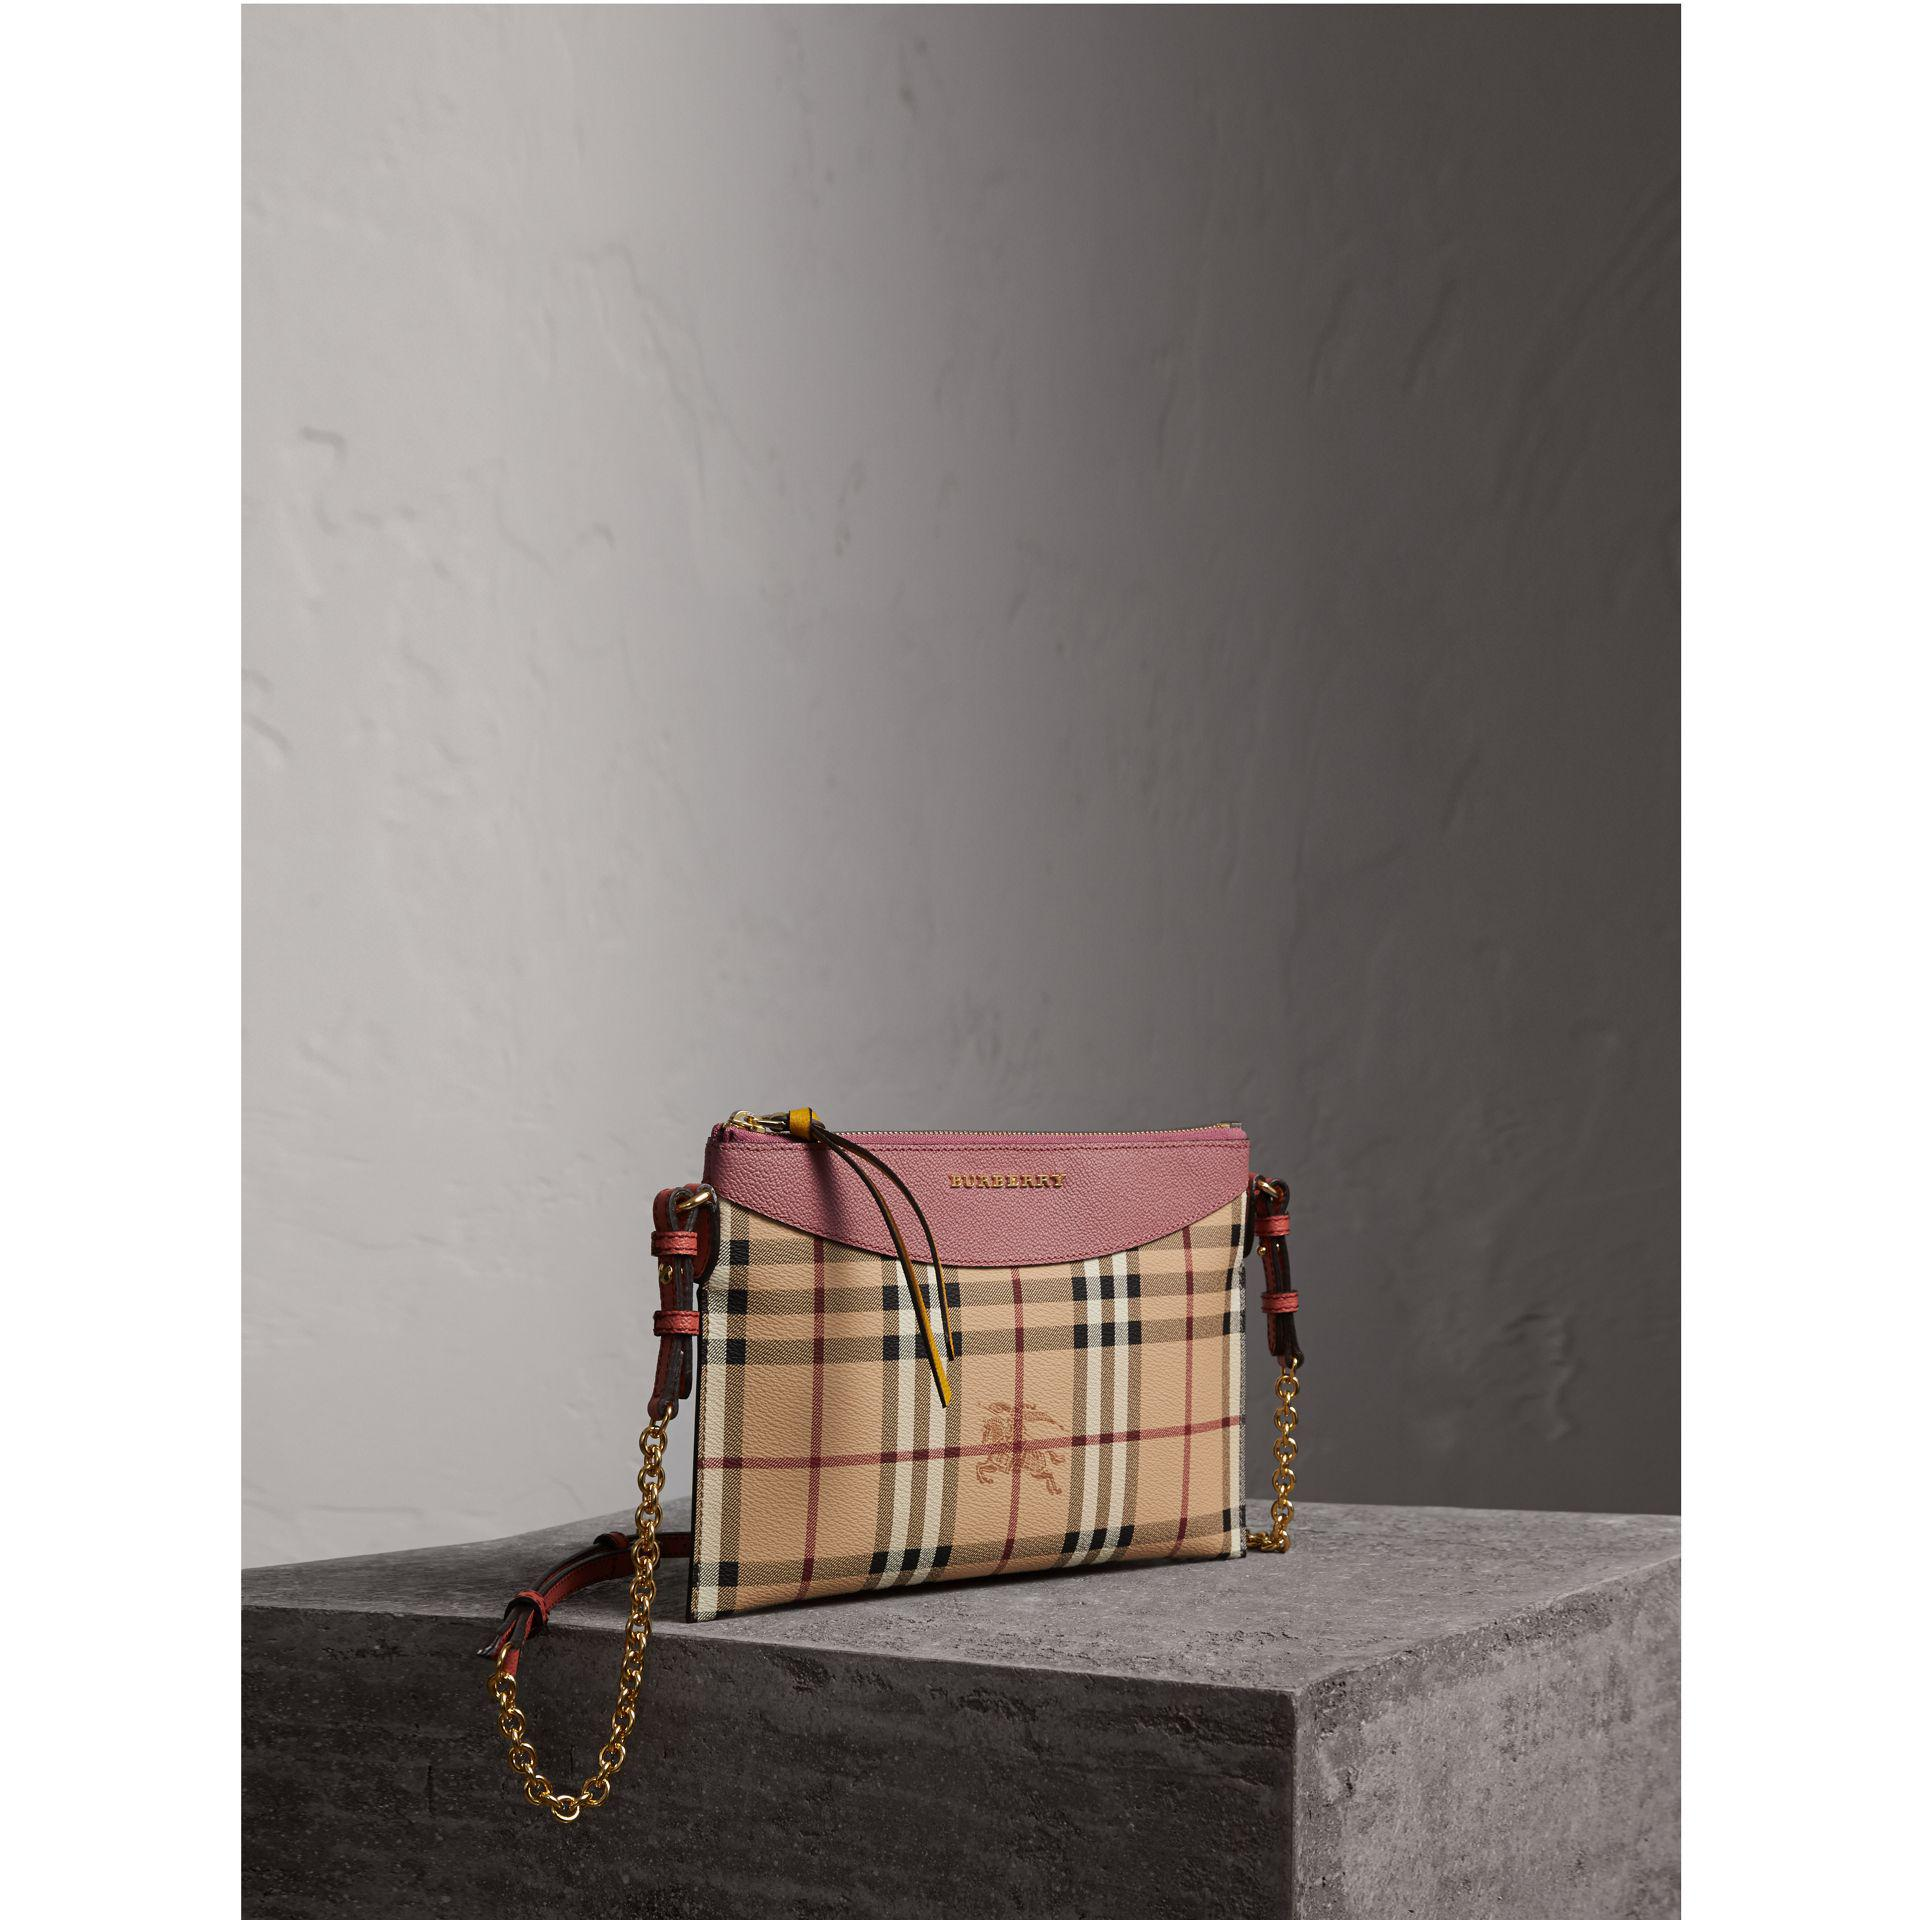 80a7ef17c62 Burberry Haymarket Check And Two-tone Leather Clutch Bag Dusty Pink ...